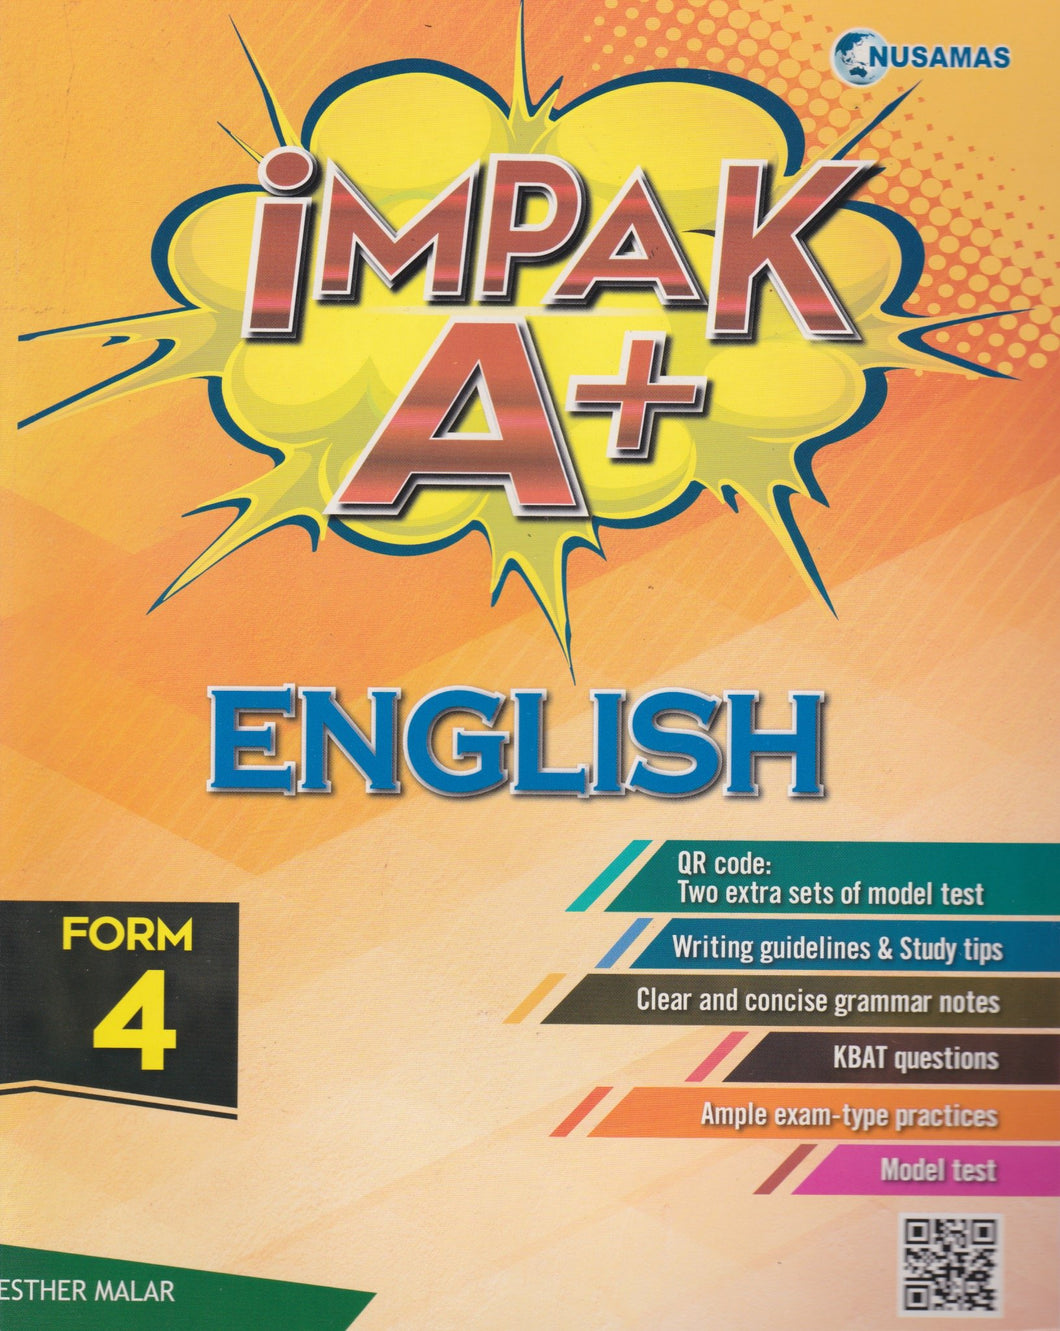 Nusamas-Impak A+: English Form 4-9789674369484-BukuDBP.com